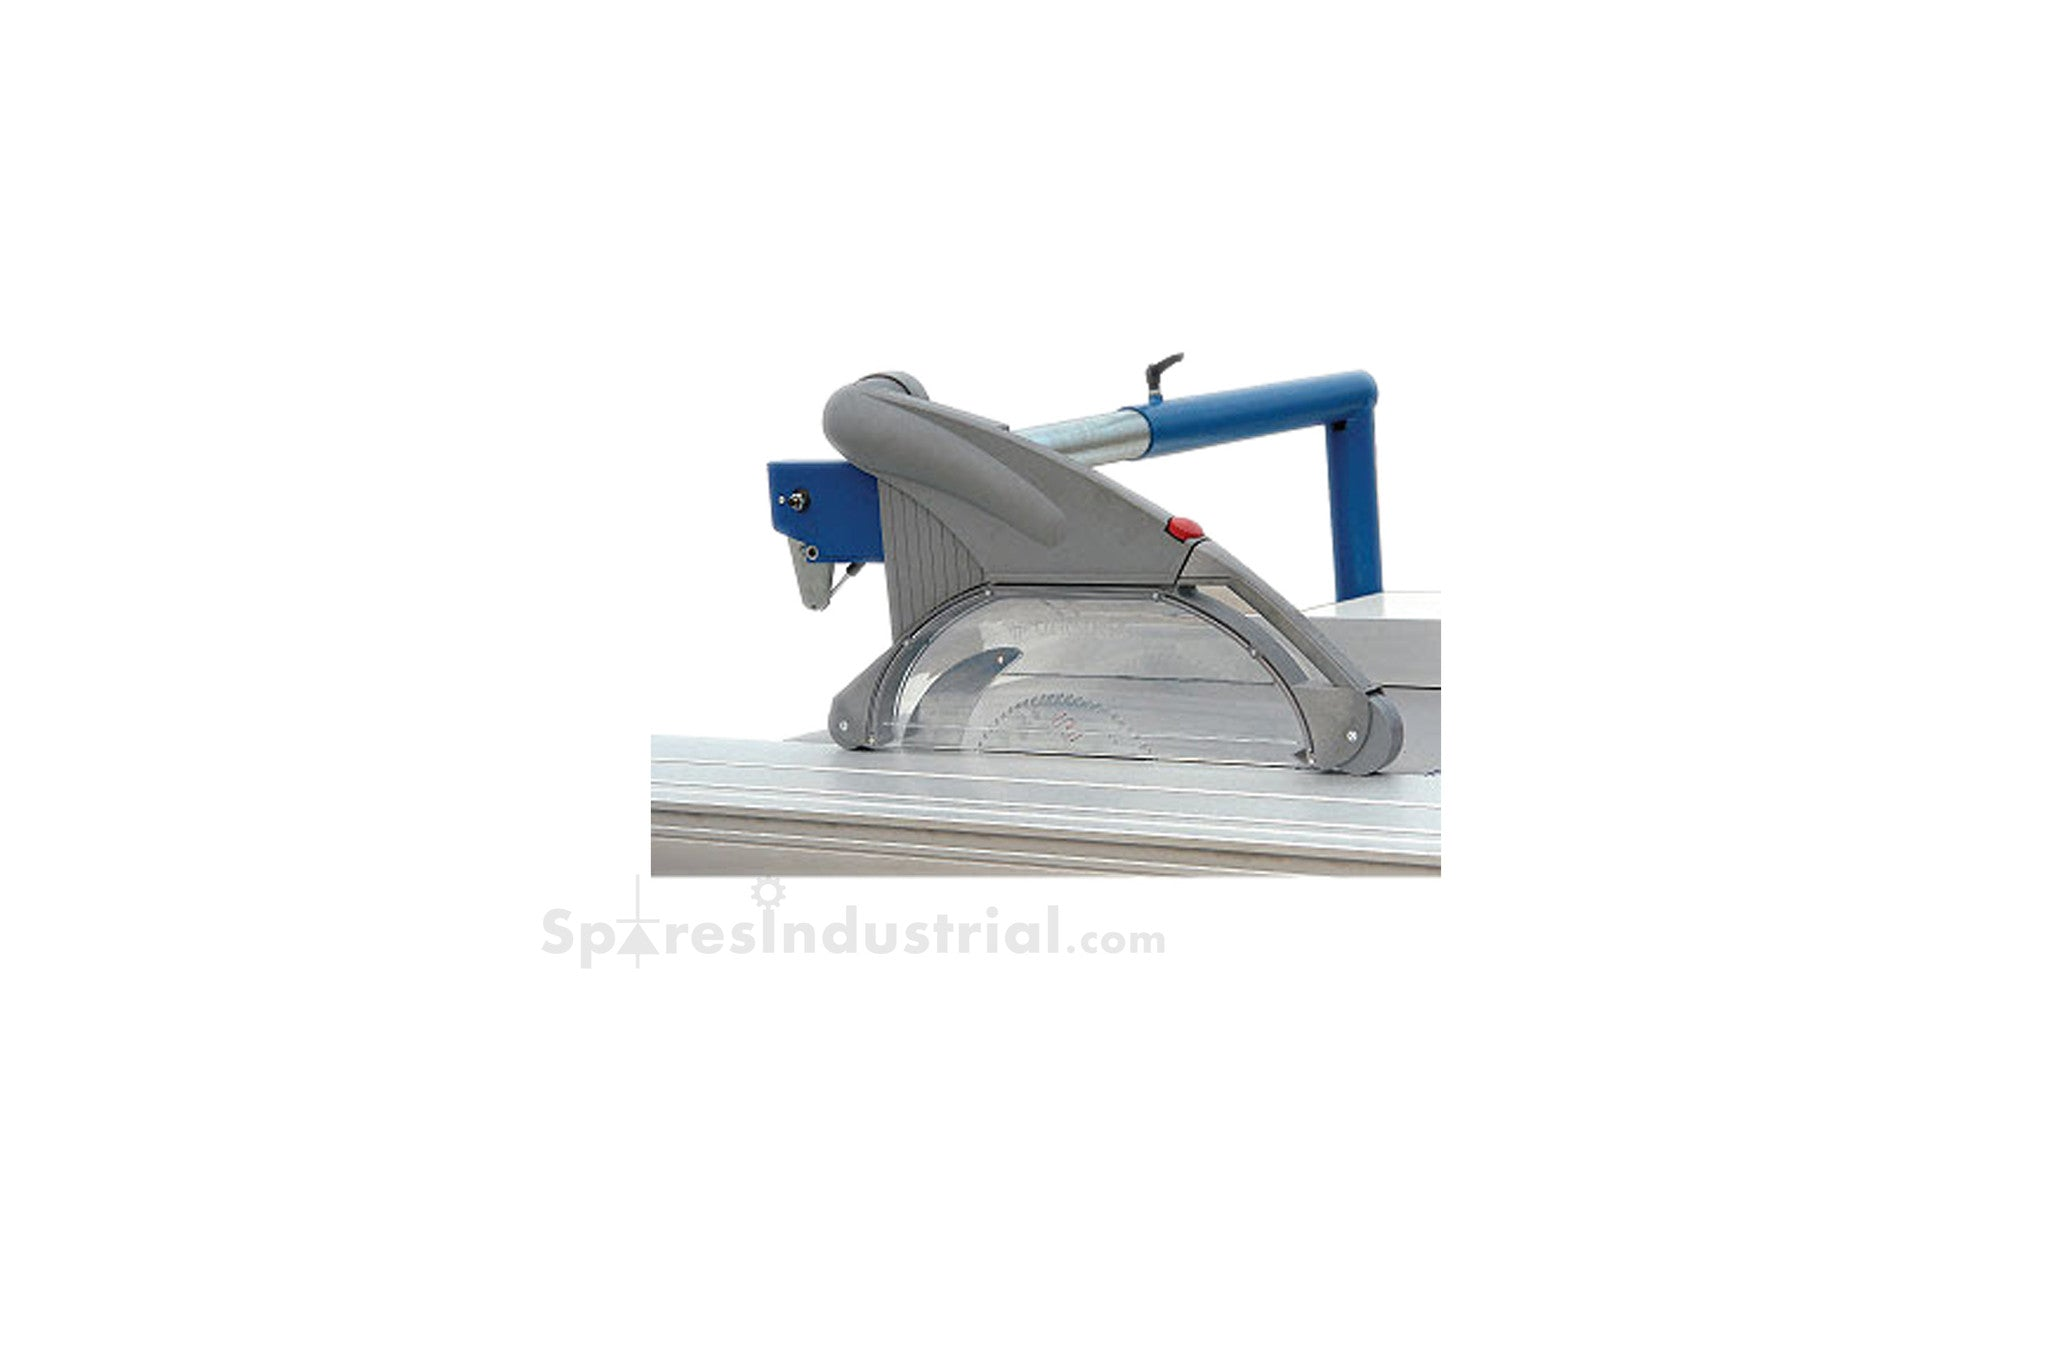 Panel Saw Large Extraction Hood Sparesindustrial Com